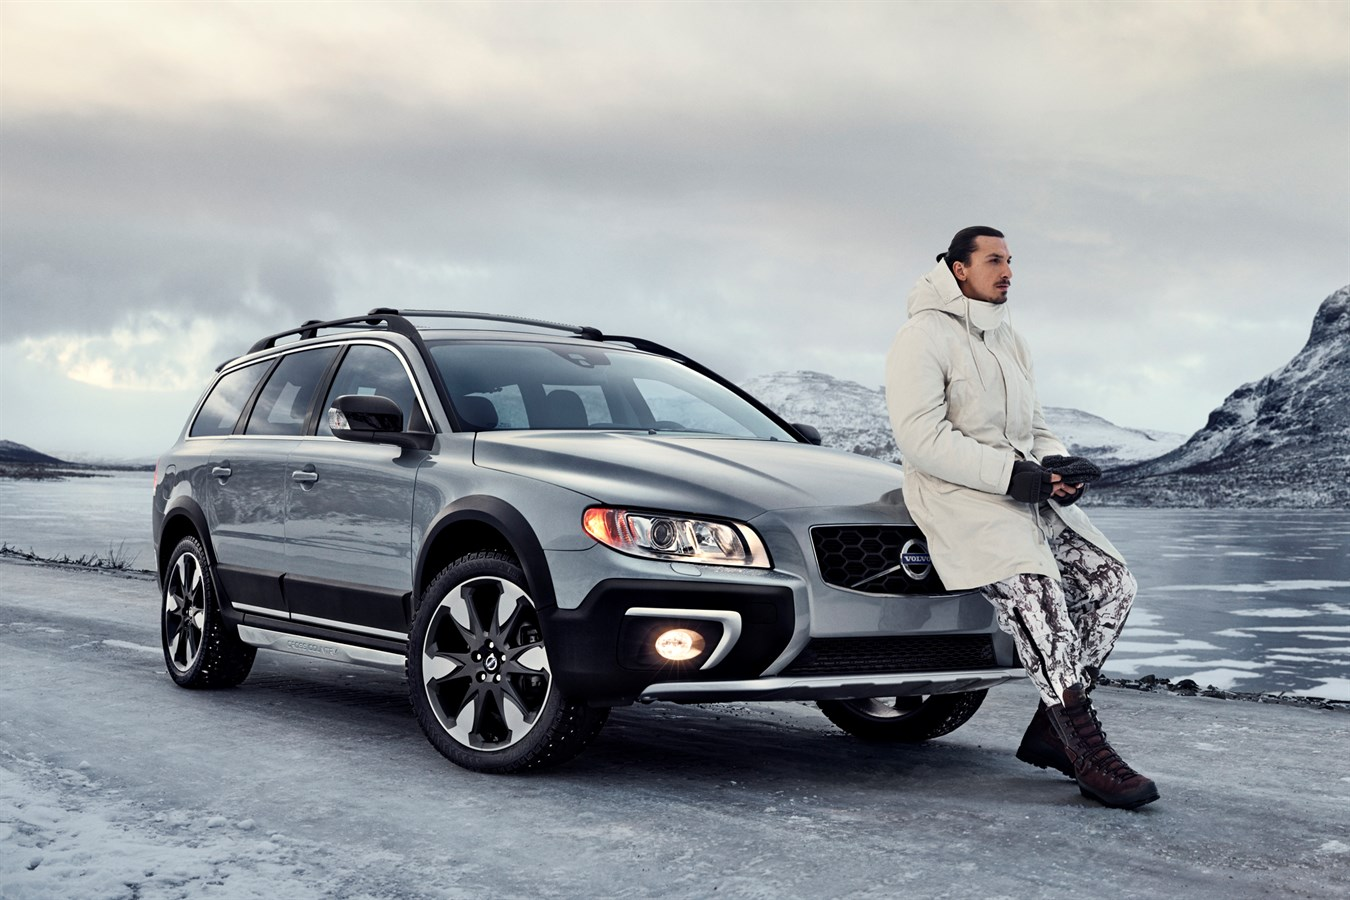 Volvo Xc70 Model Year 2015 Volvo Car Group Global Media Newsroom